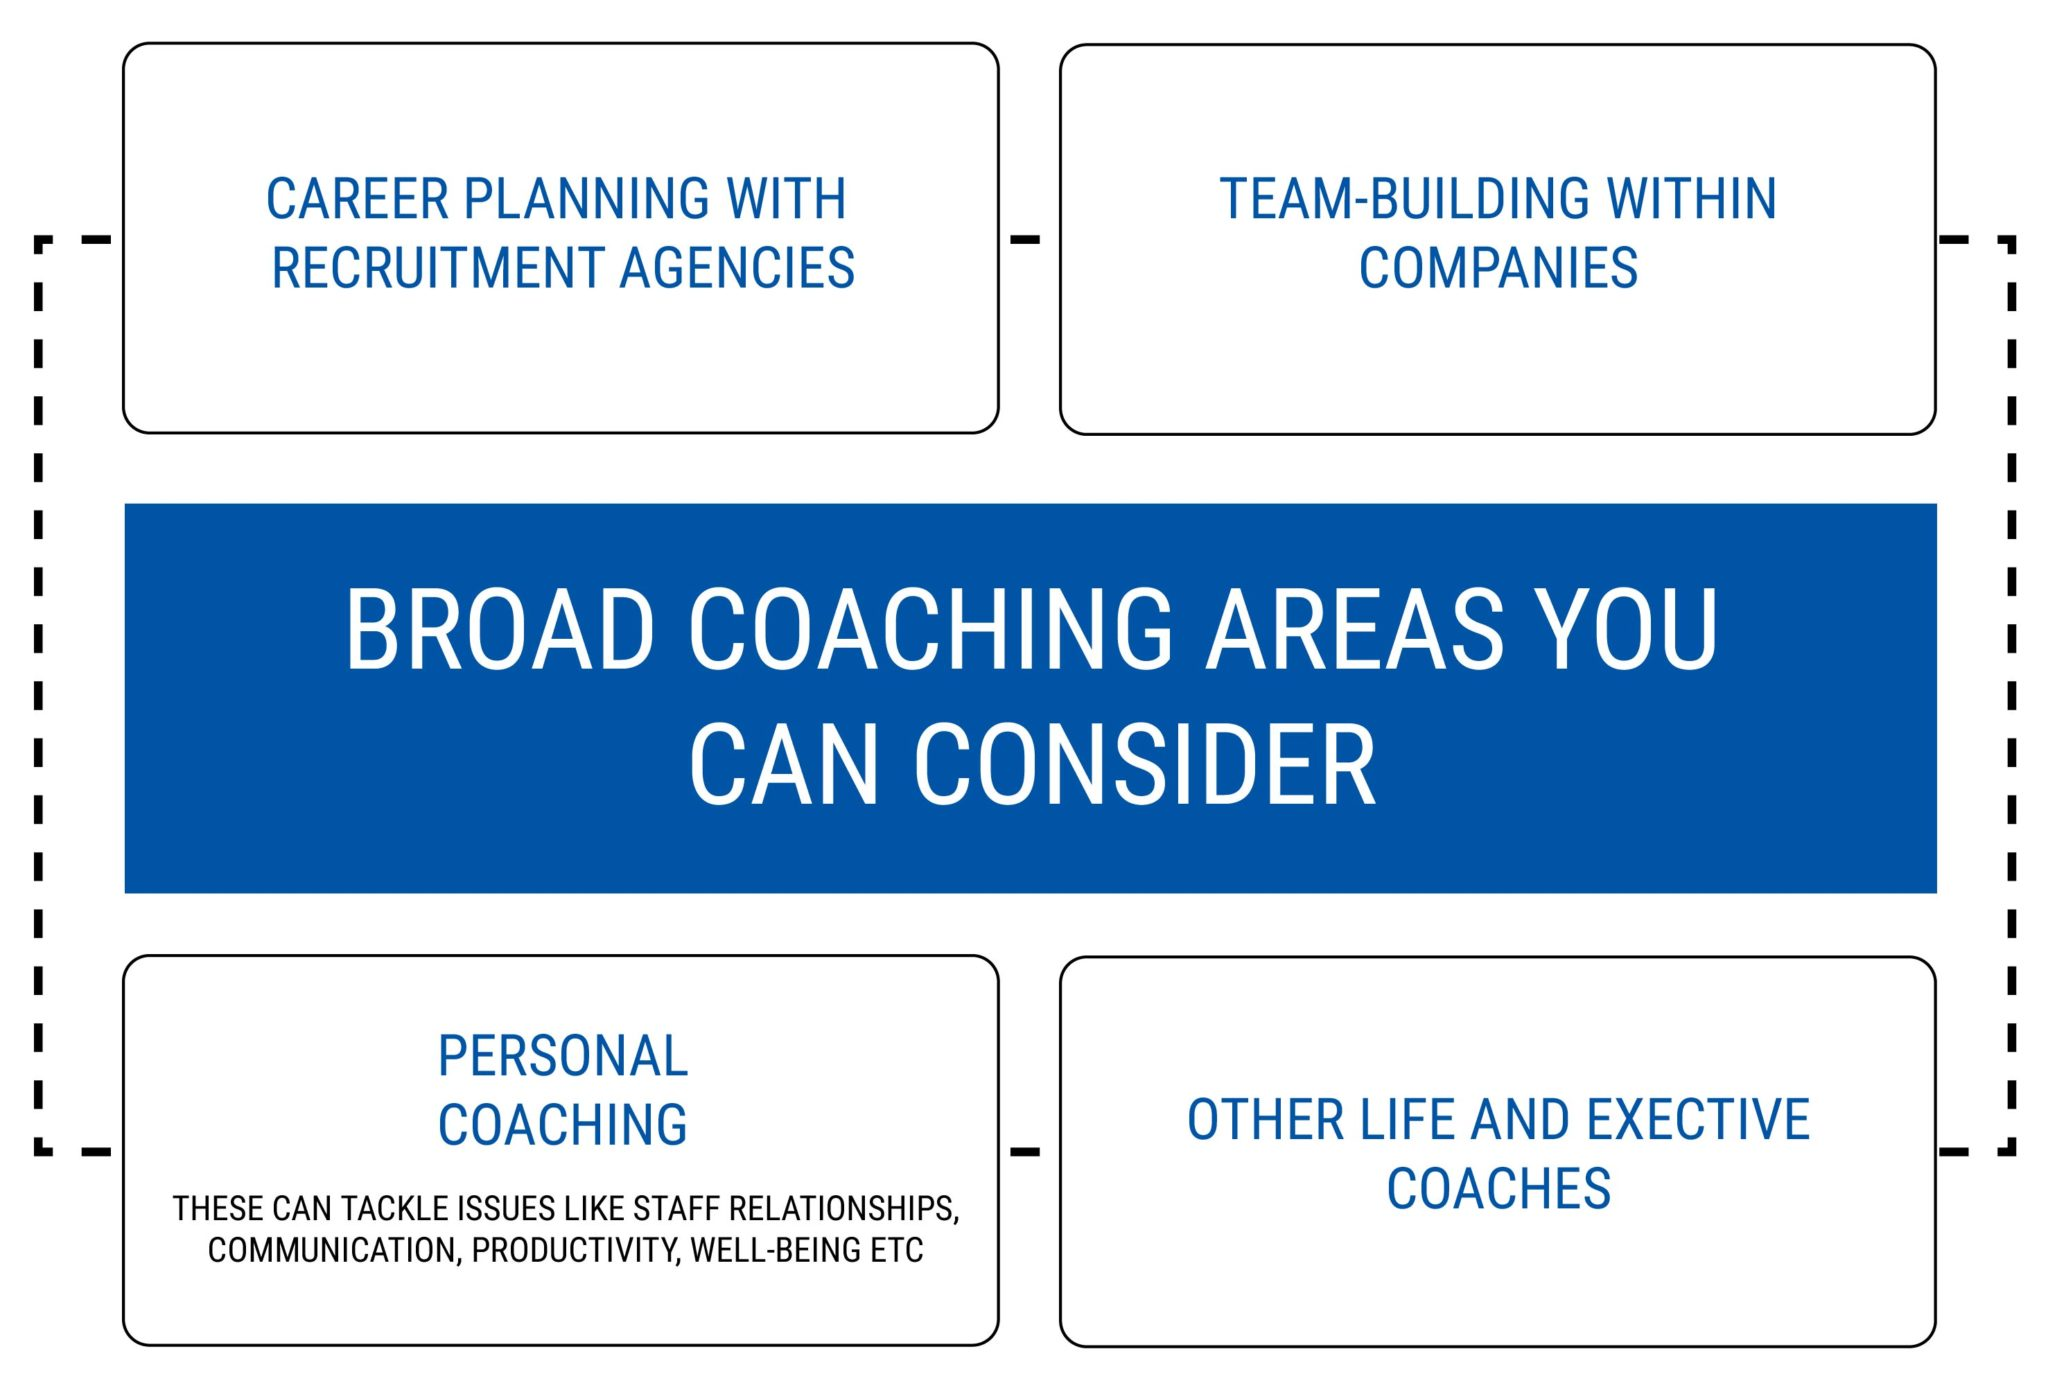 BROAD COACHING AREAS YOU CAN CONSIDER